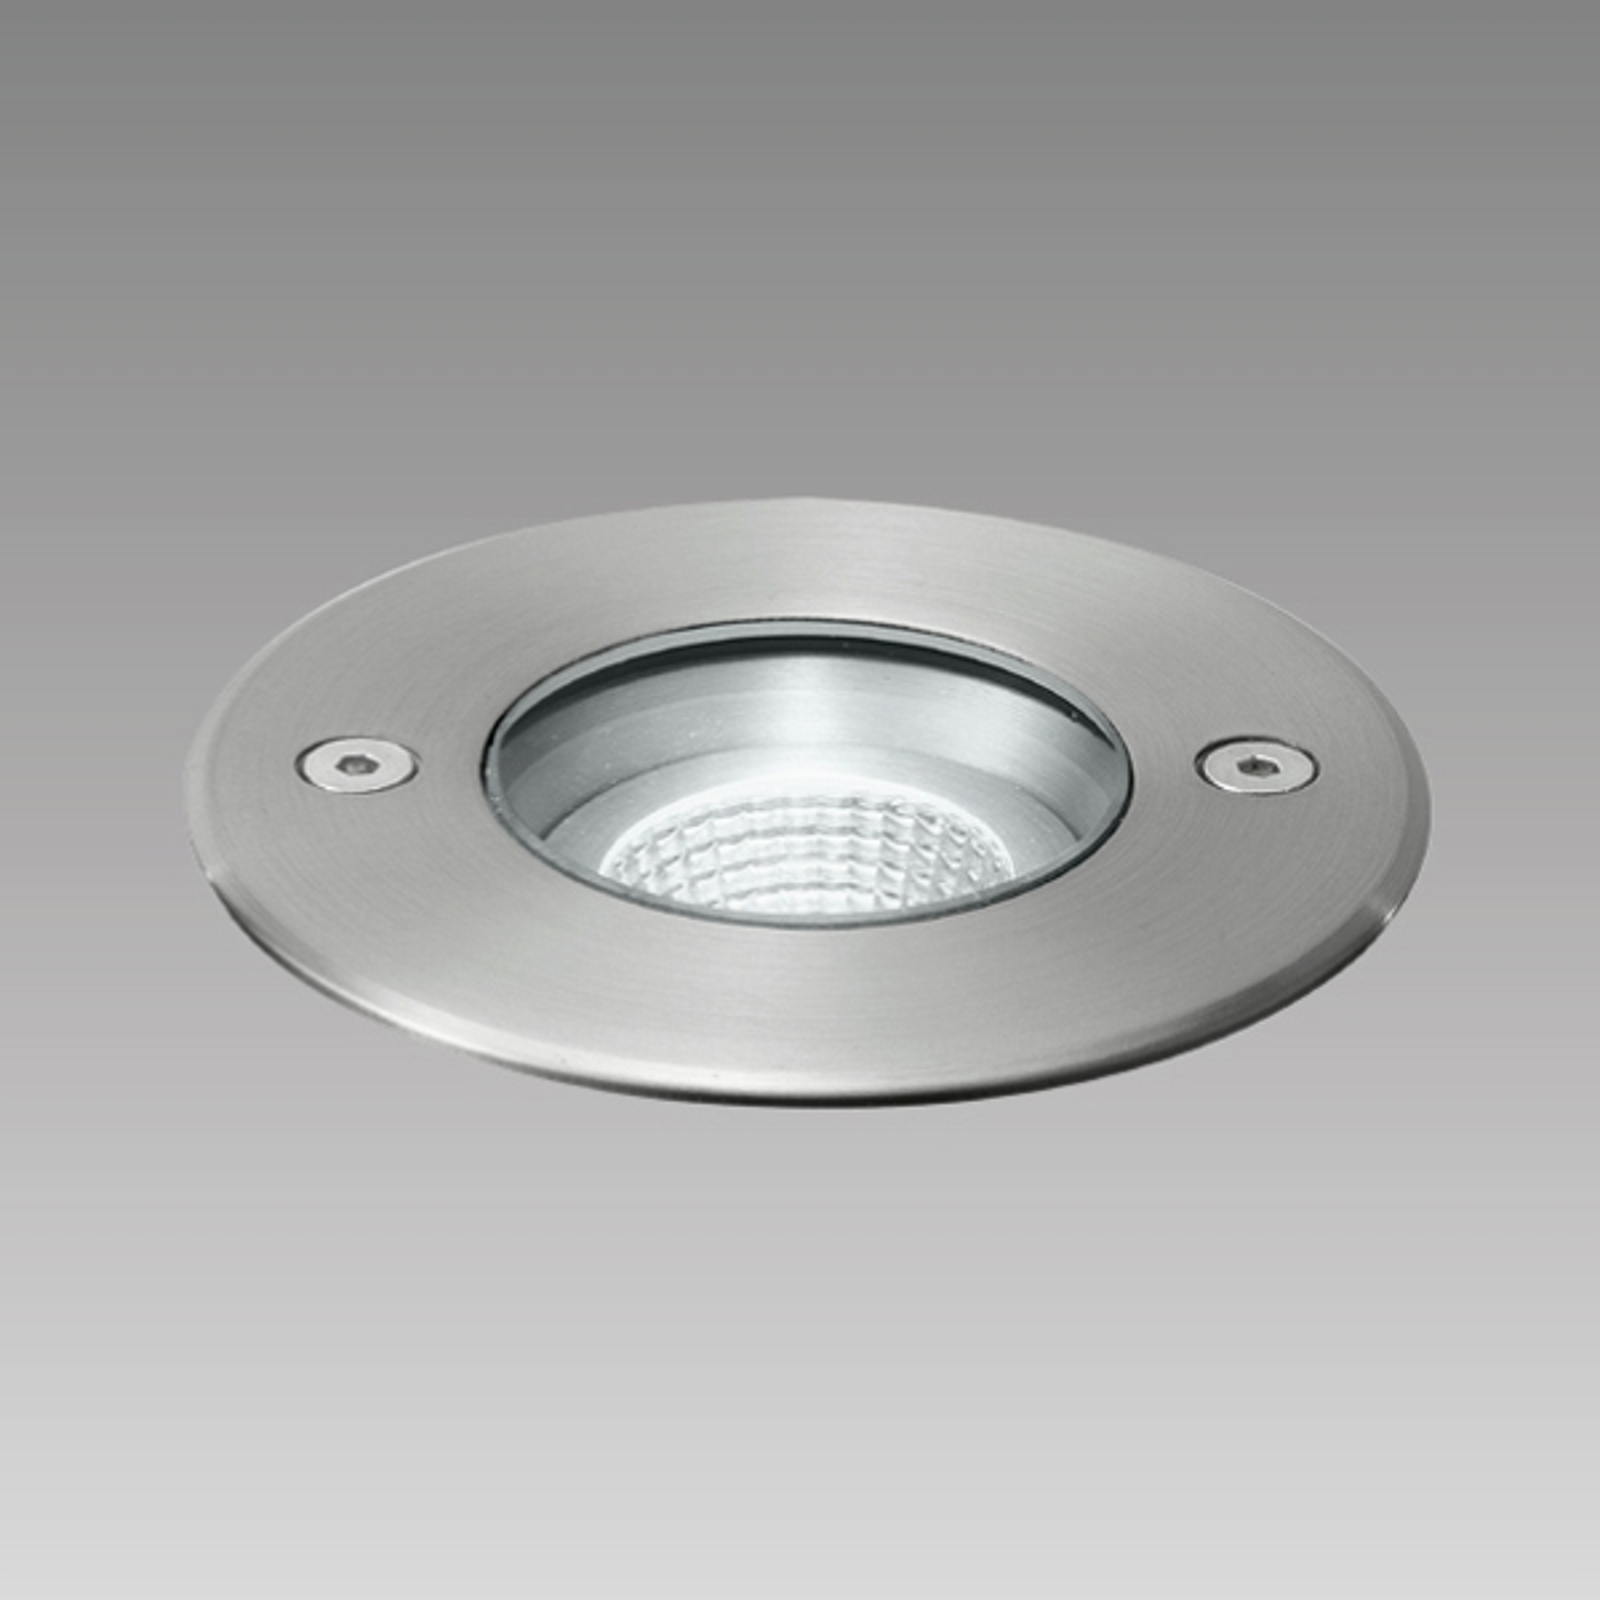 Frisco LED stainless steel recessed light, IP67_3023078_1